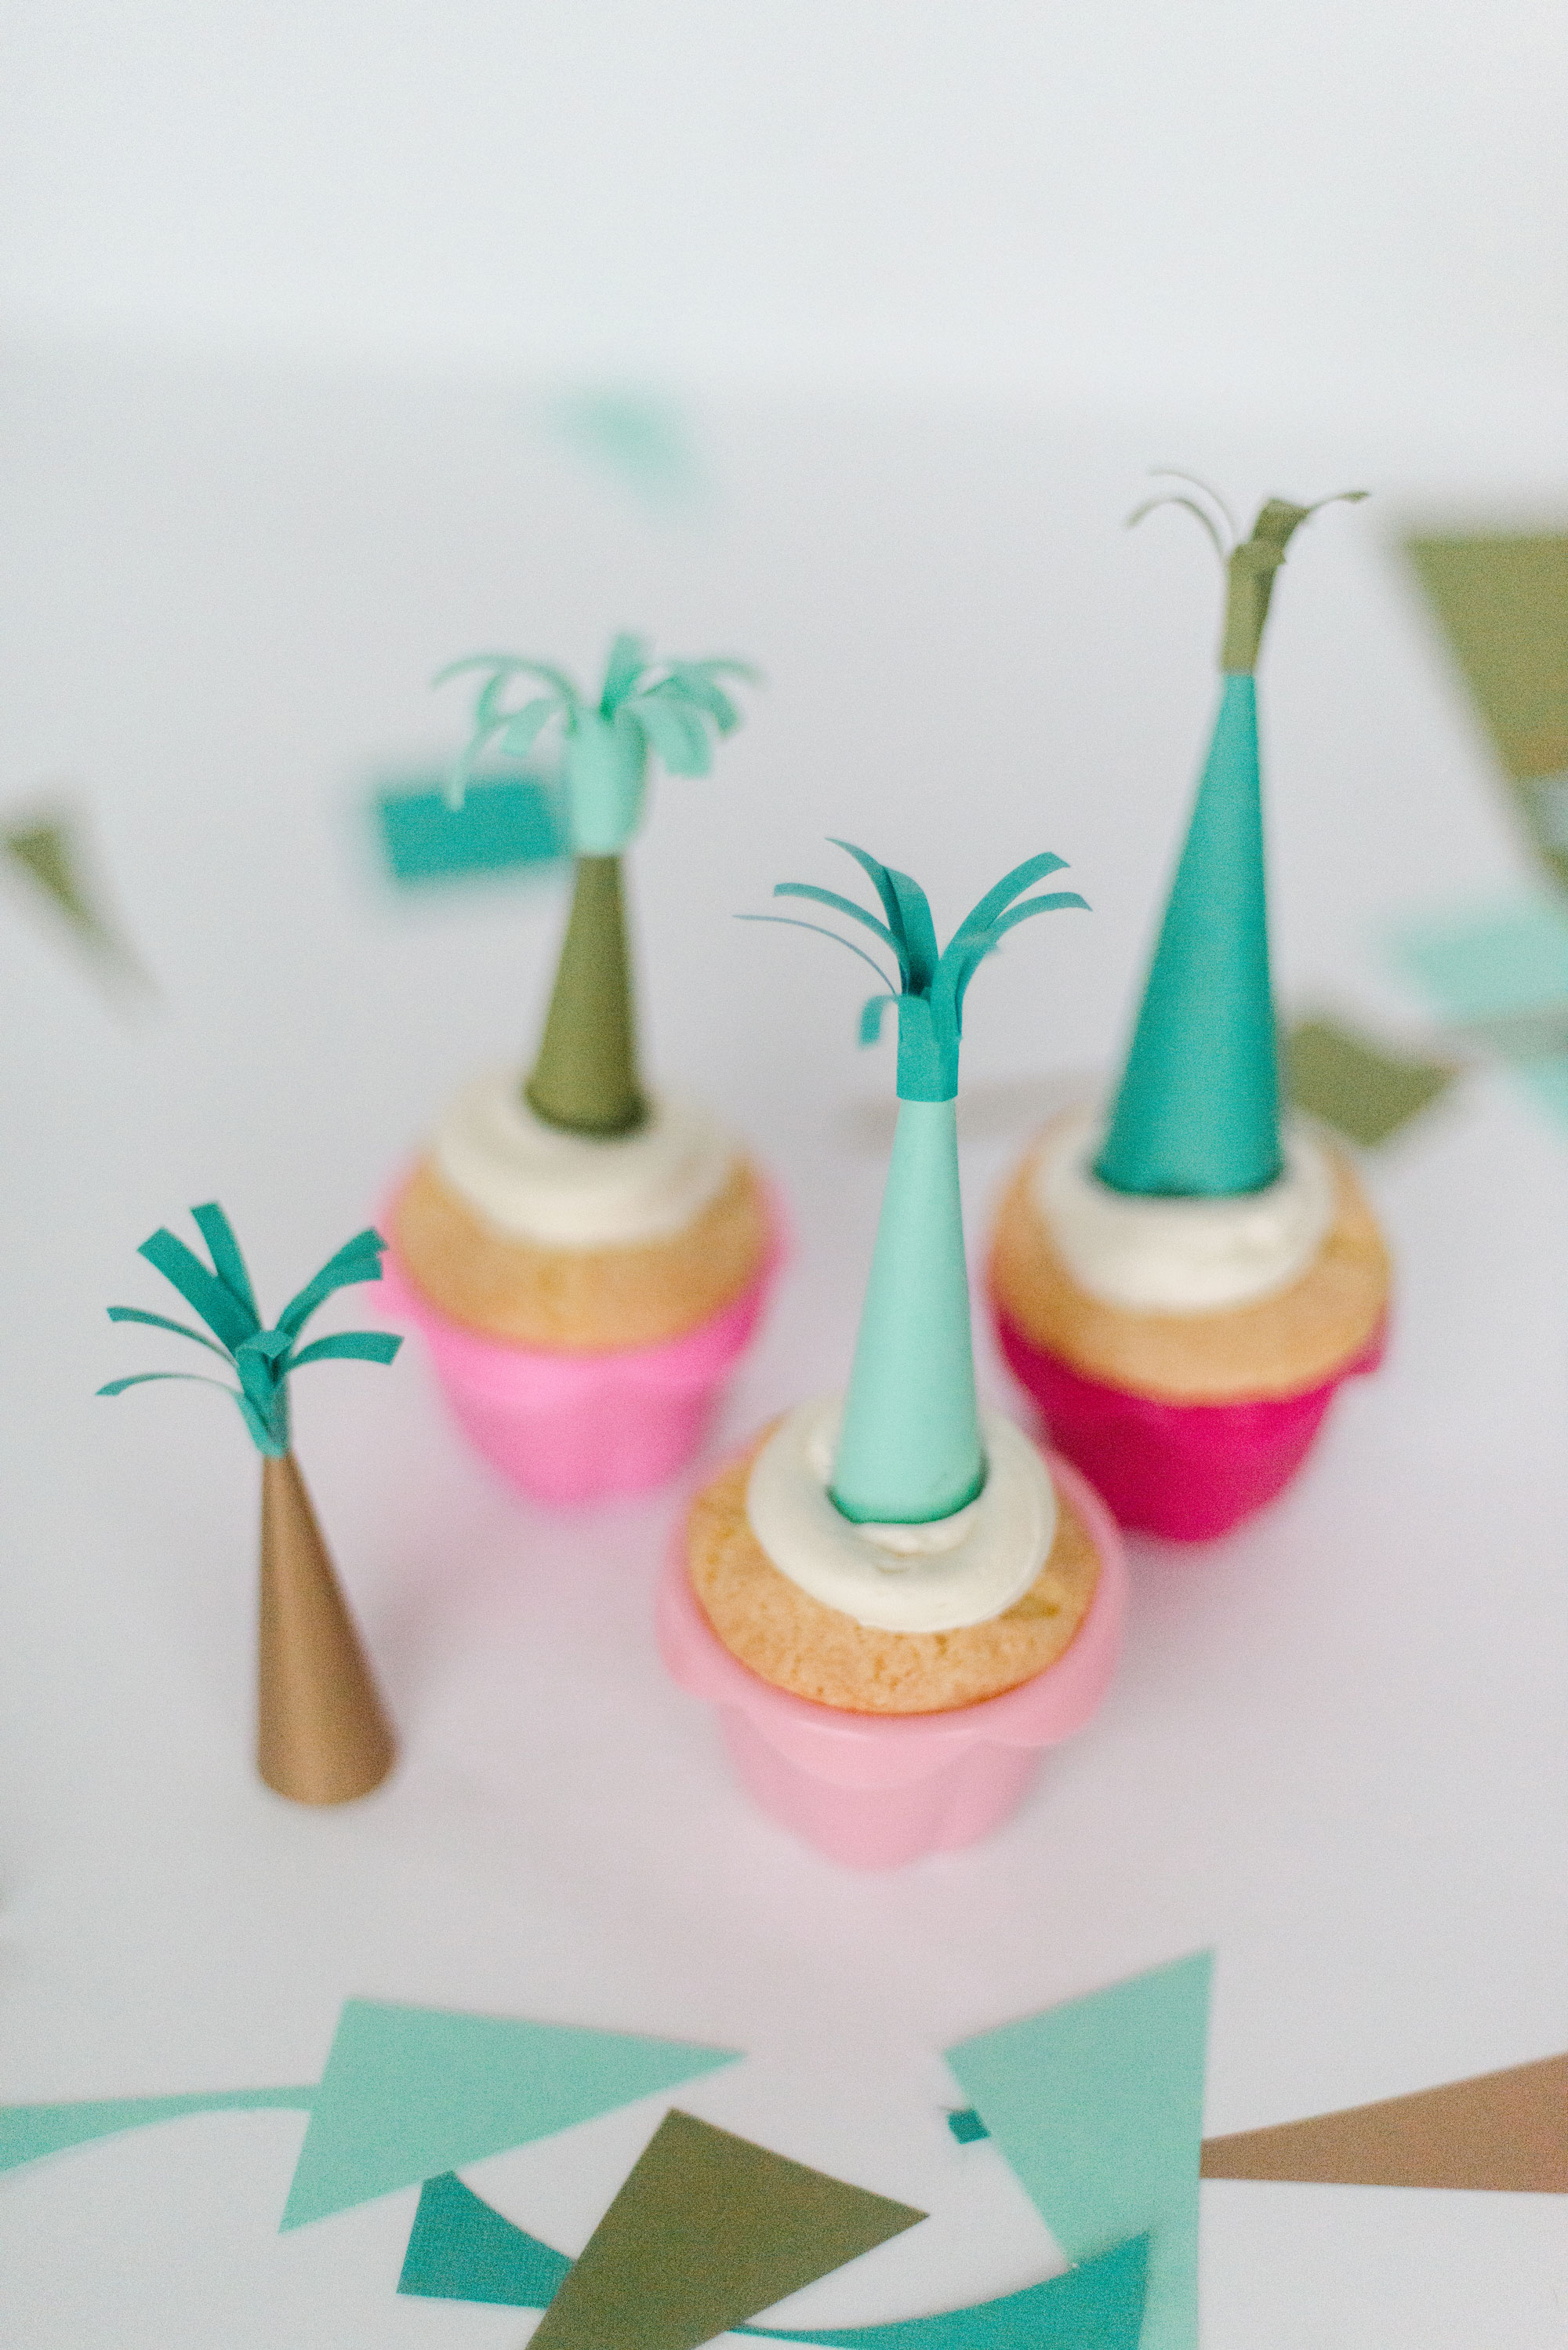 cupcake topper party hats, birthday party cupcake topper, birthday party cupcake ideas, kids birthday party ideas, easy kids birthday craft, easy kids birthday party decorations, easy birthday decor